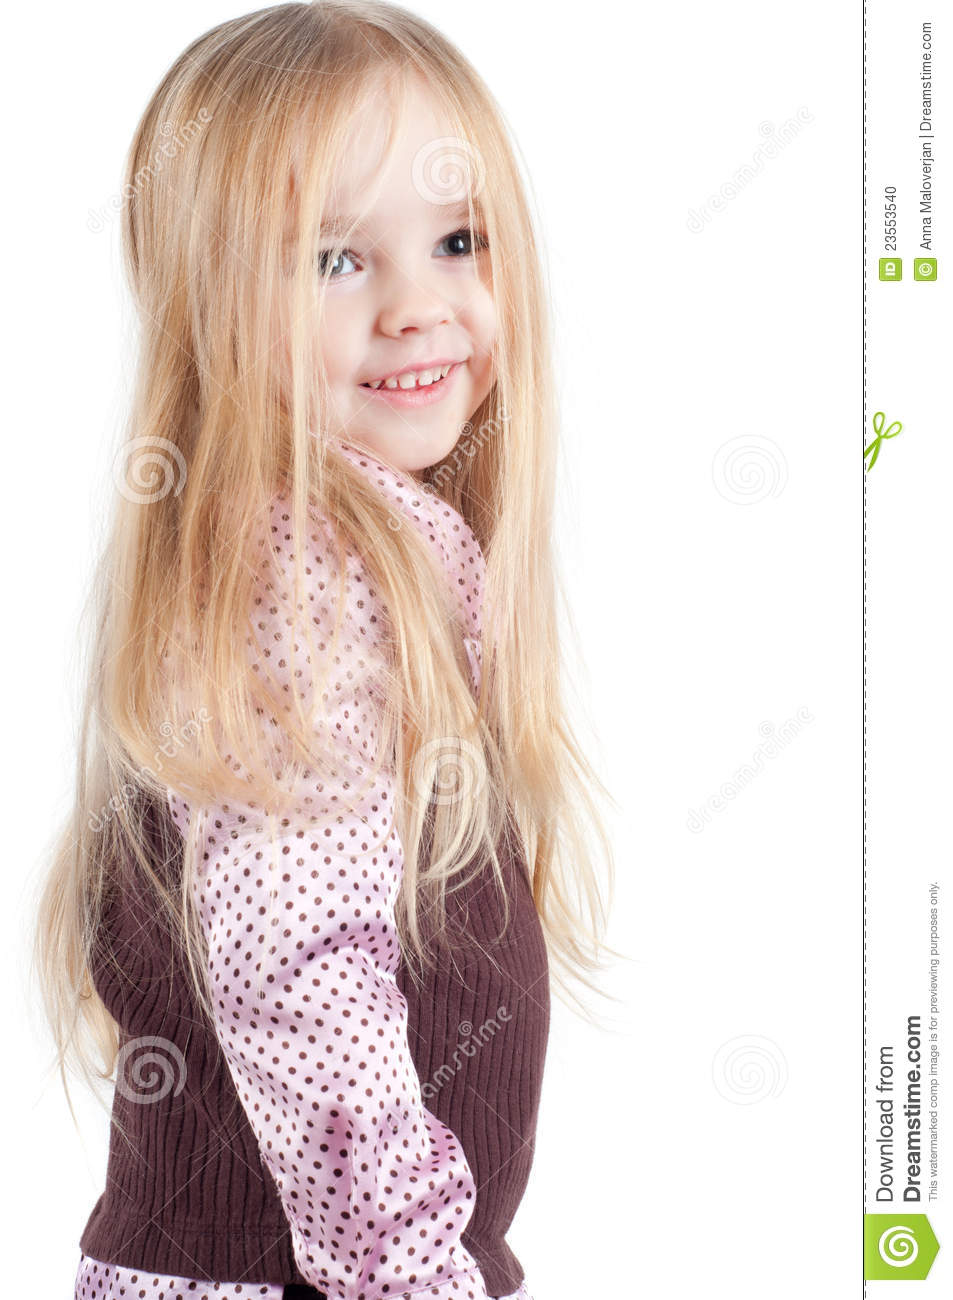 portrait of little cute girl with long hair royalty free stock photo 19097373. Black Bedroom Furniture Sets. Home Design Ideas